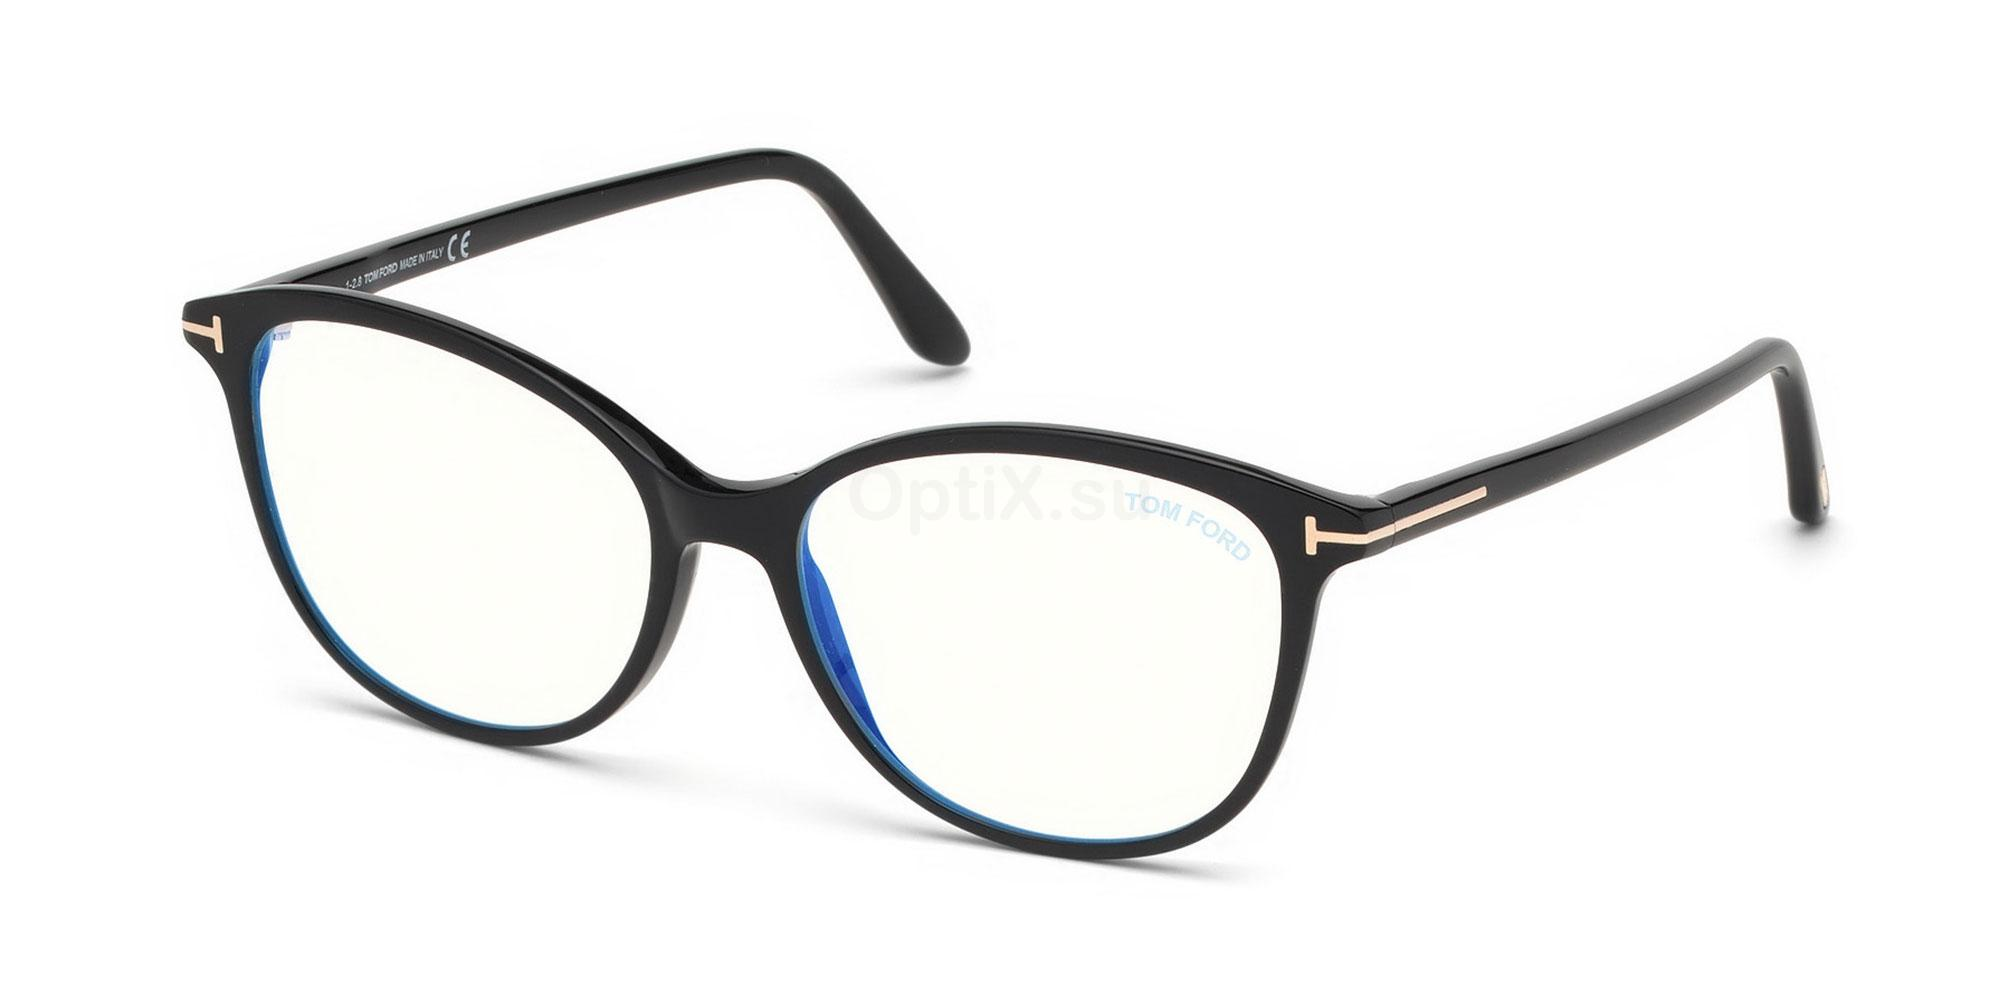 001 FT5576-B Glasses, Tom Ford